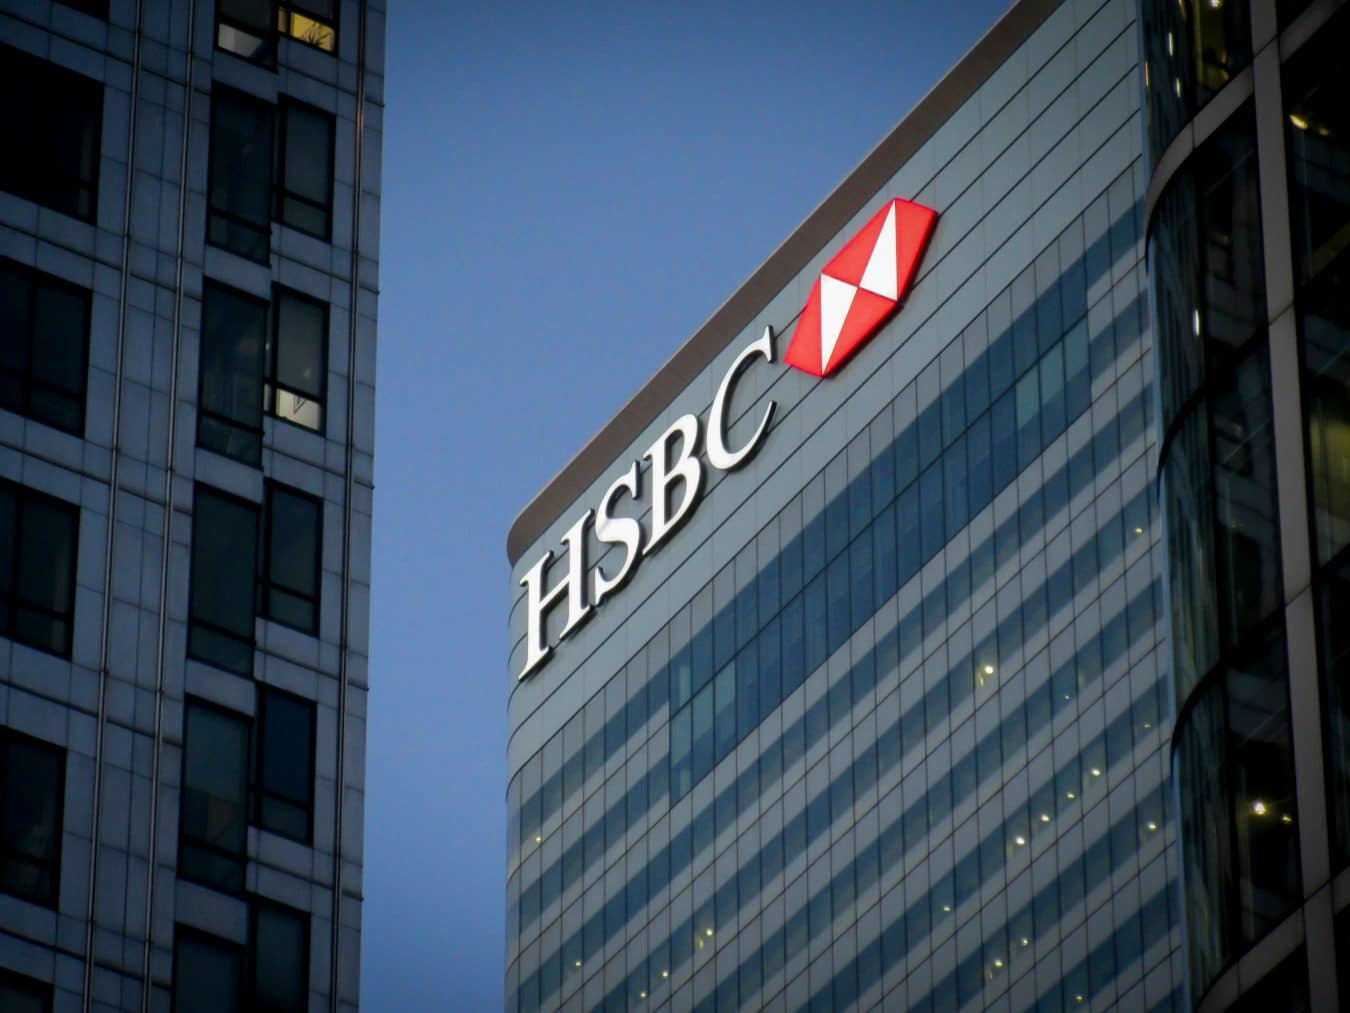 HSBC plans to cut 35,000 jobs as profits plunge by 33%